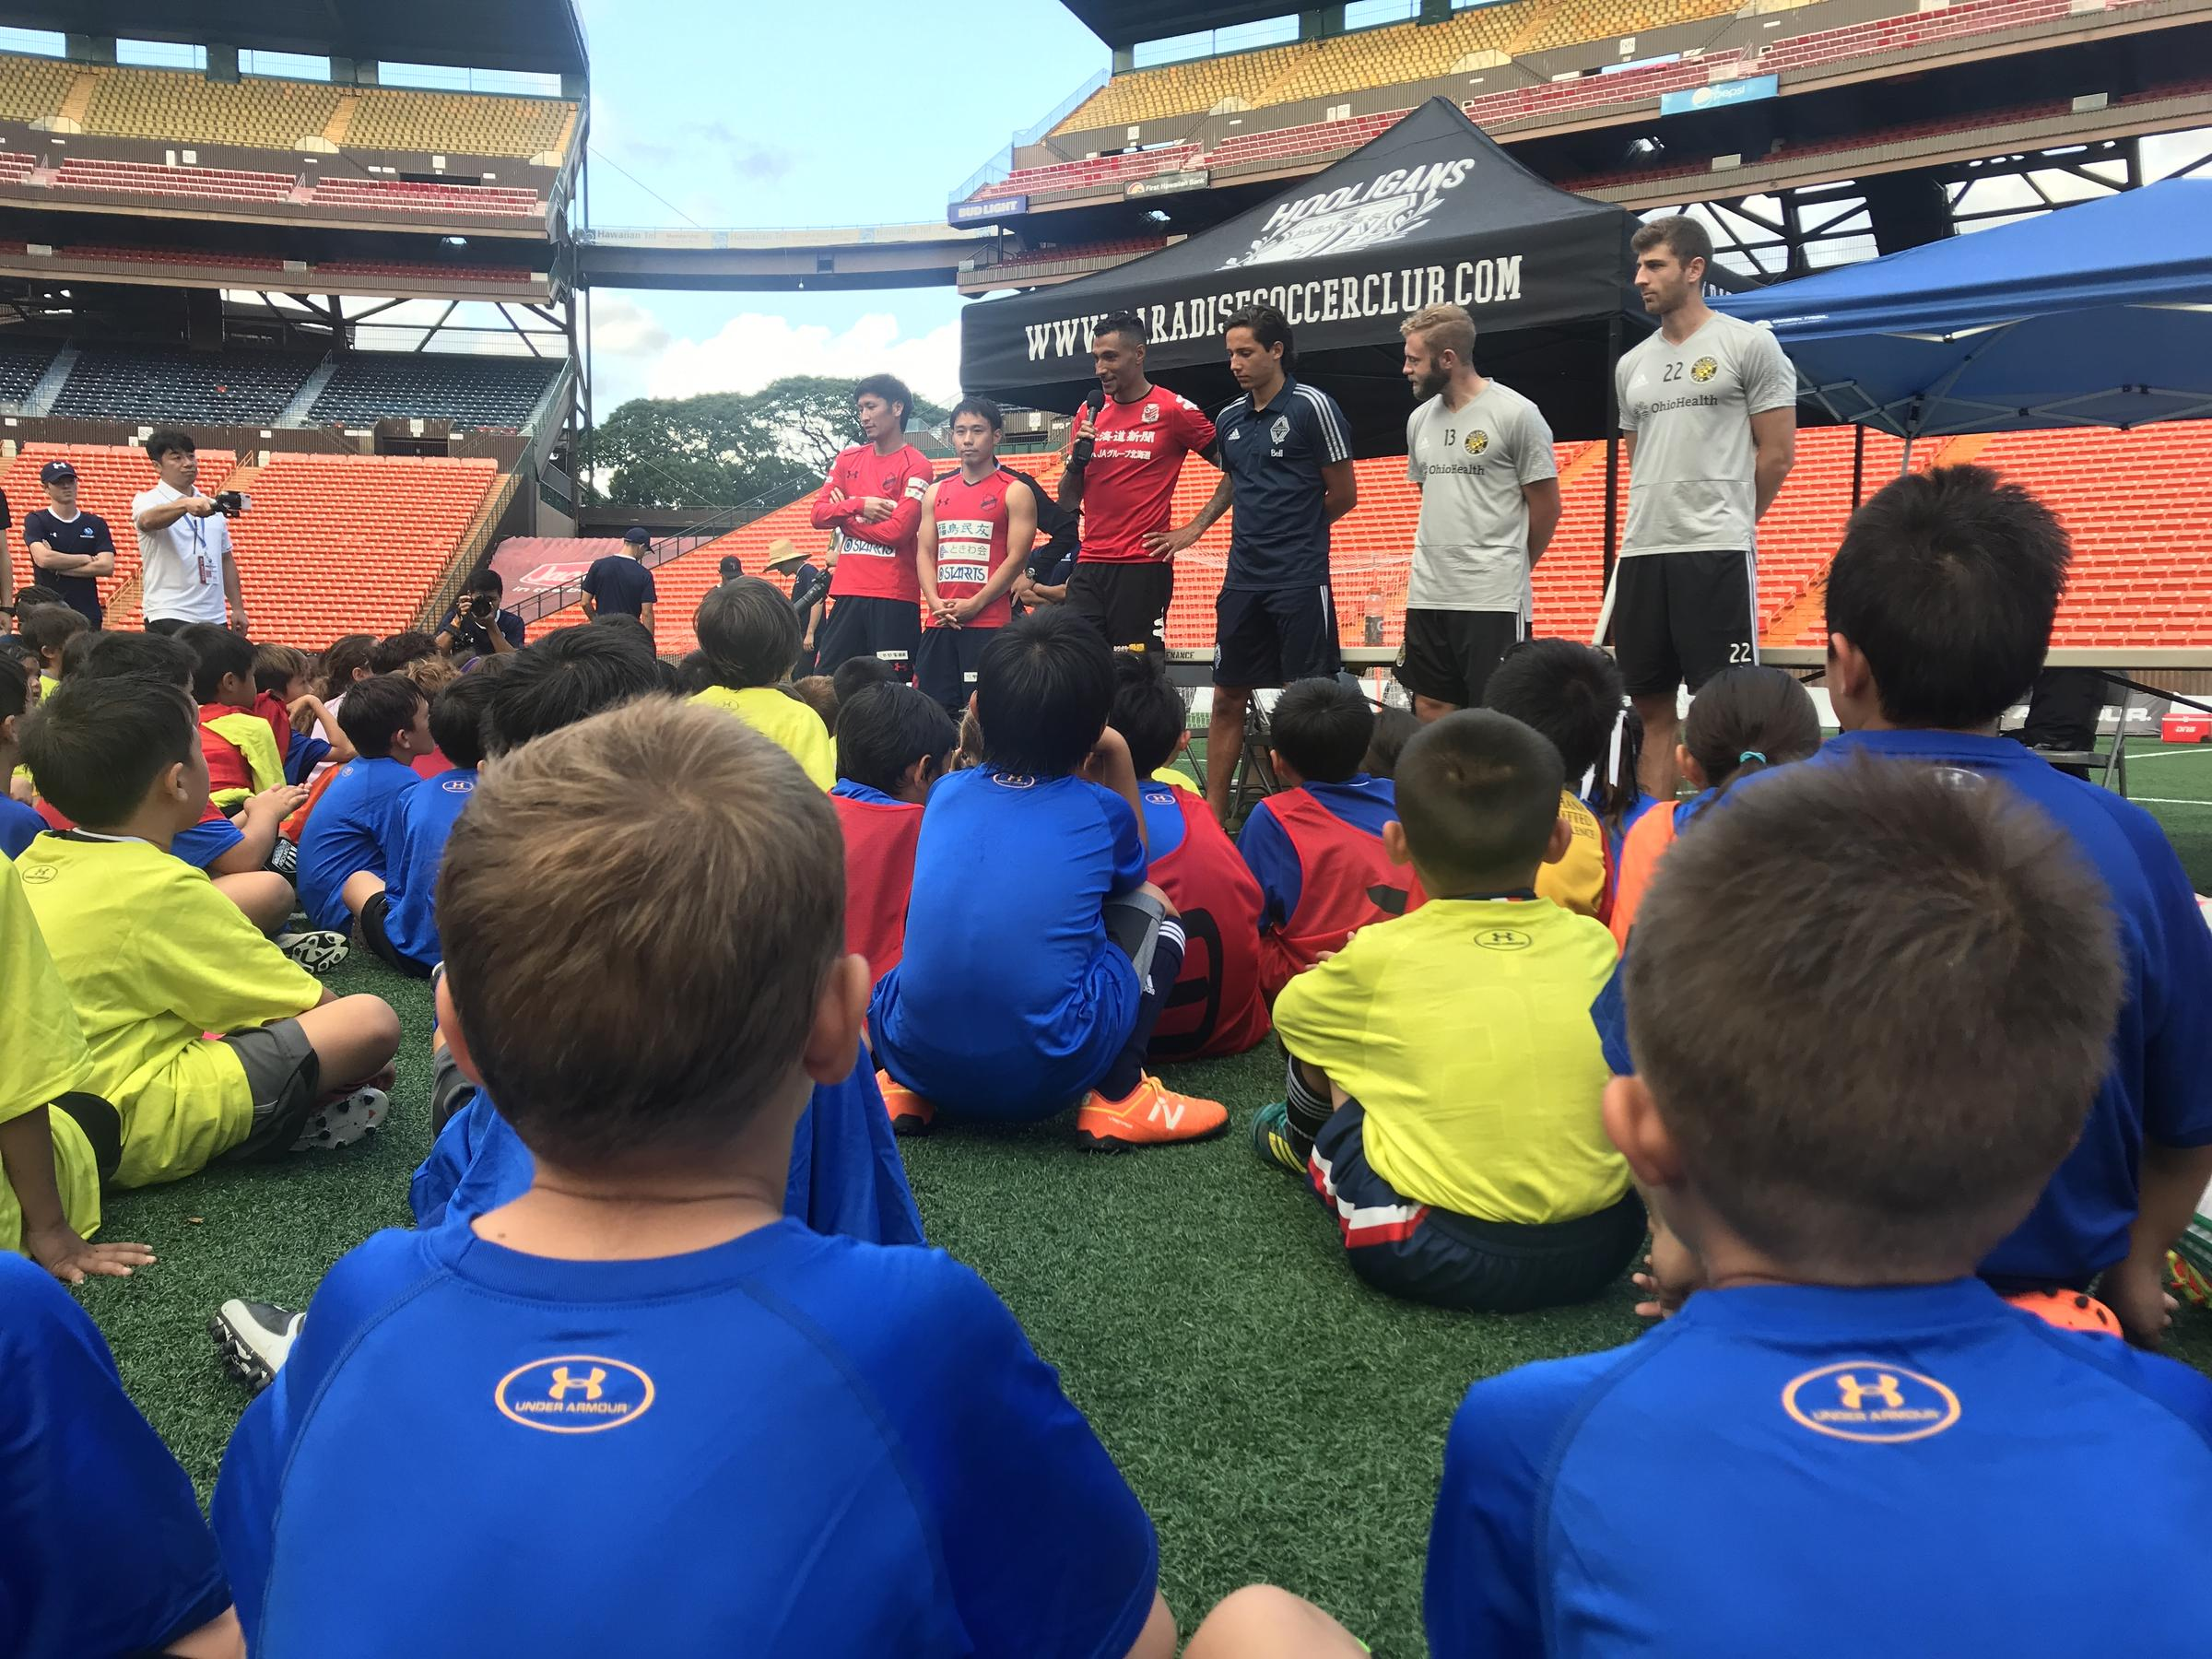 Soccer Pros Fill Aloha Stadium with Excitement, but Will It Last